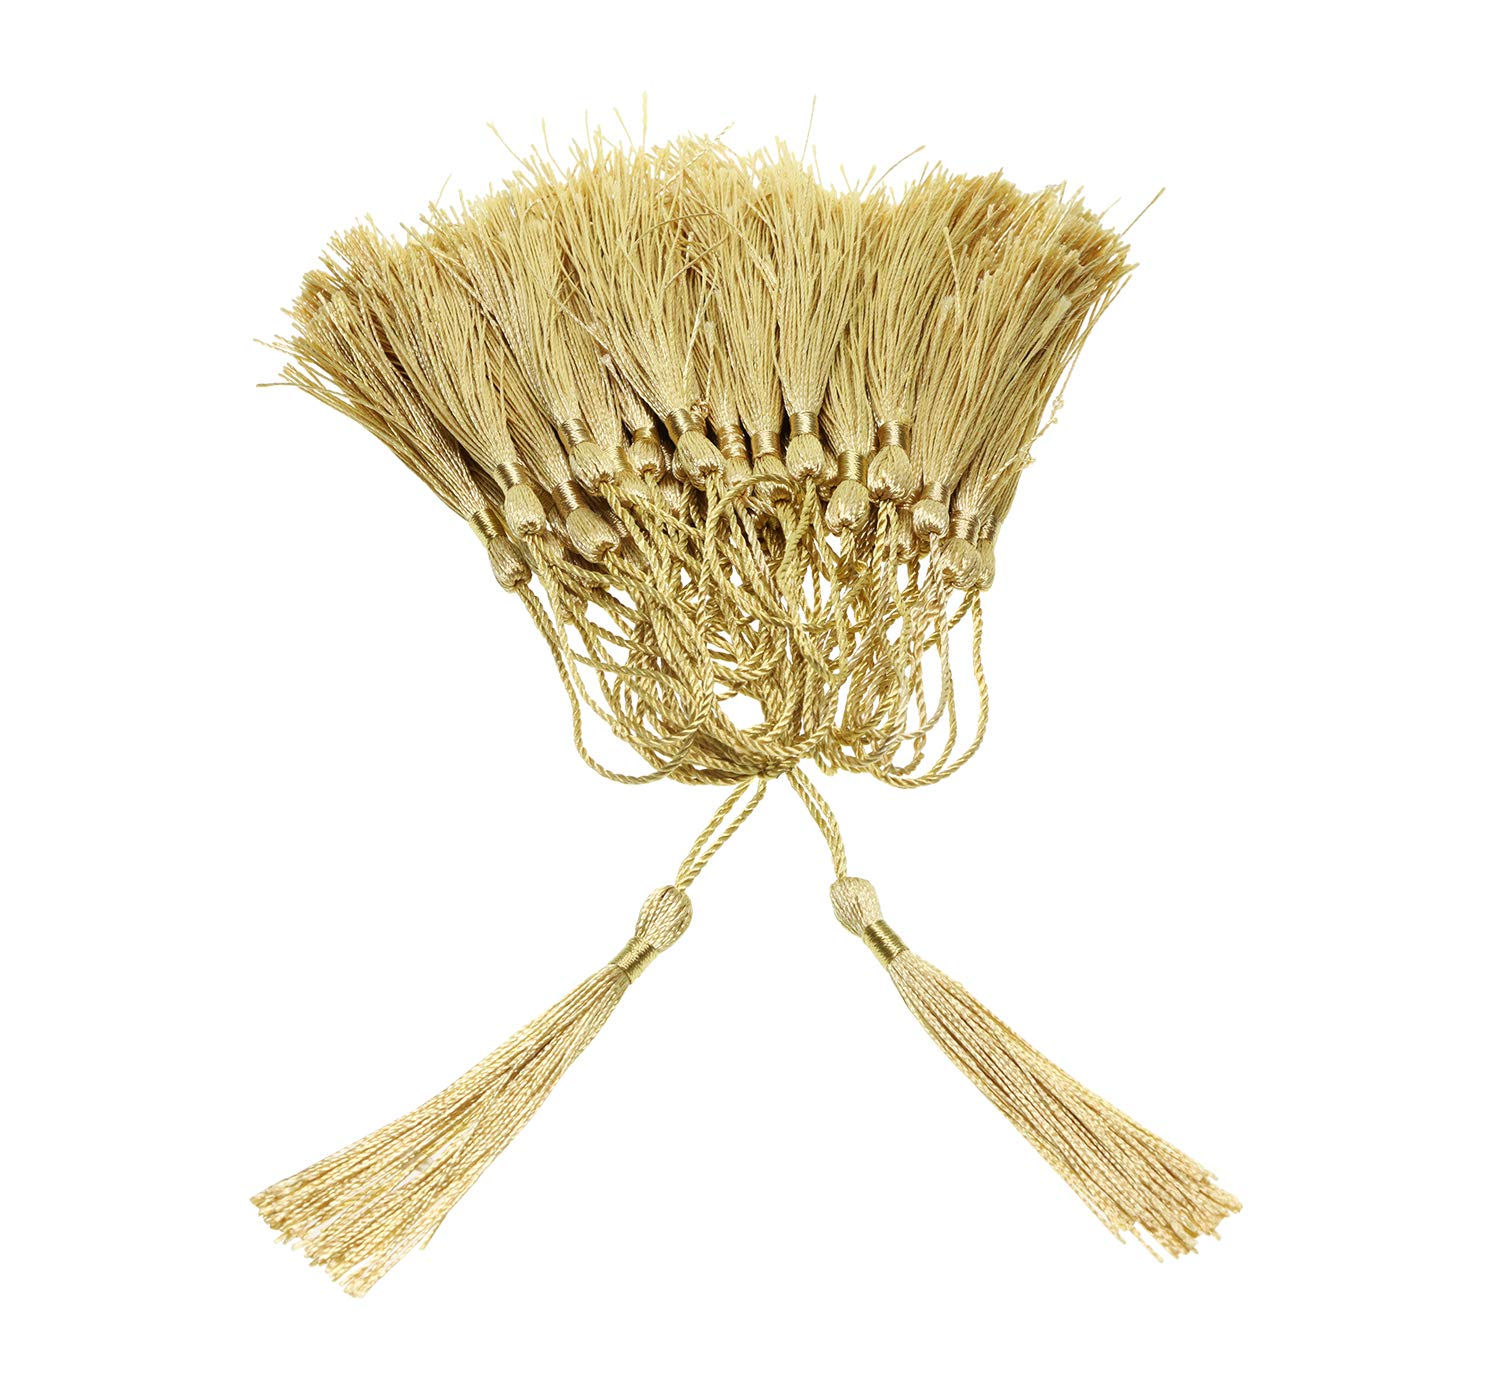 Gift Tag DIY Craft Projects,/20PCS Graduation Souvenir Tupalizy Mini Silky/Handmade Soft/Flossy Bookmark Tassels with Cord Loop for Keychain Earring Jewelry Making Clothing Sewing Light Gold